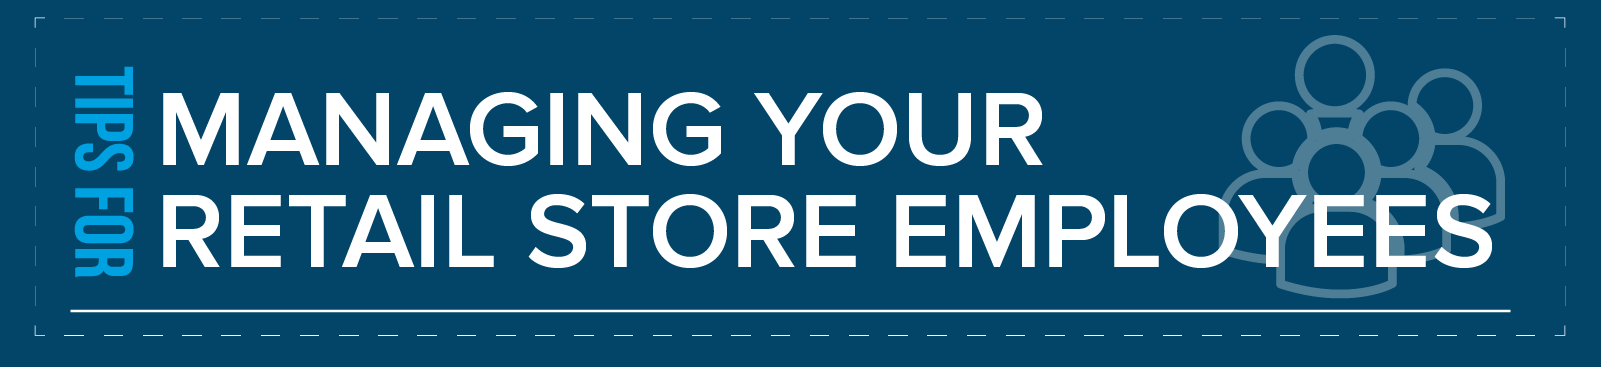 Deputy-30 Tips Real Managers Share for Opening a Successful Retail Store-blog assets-06